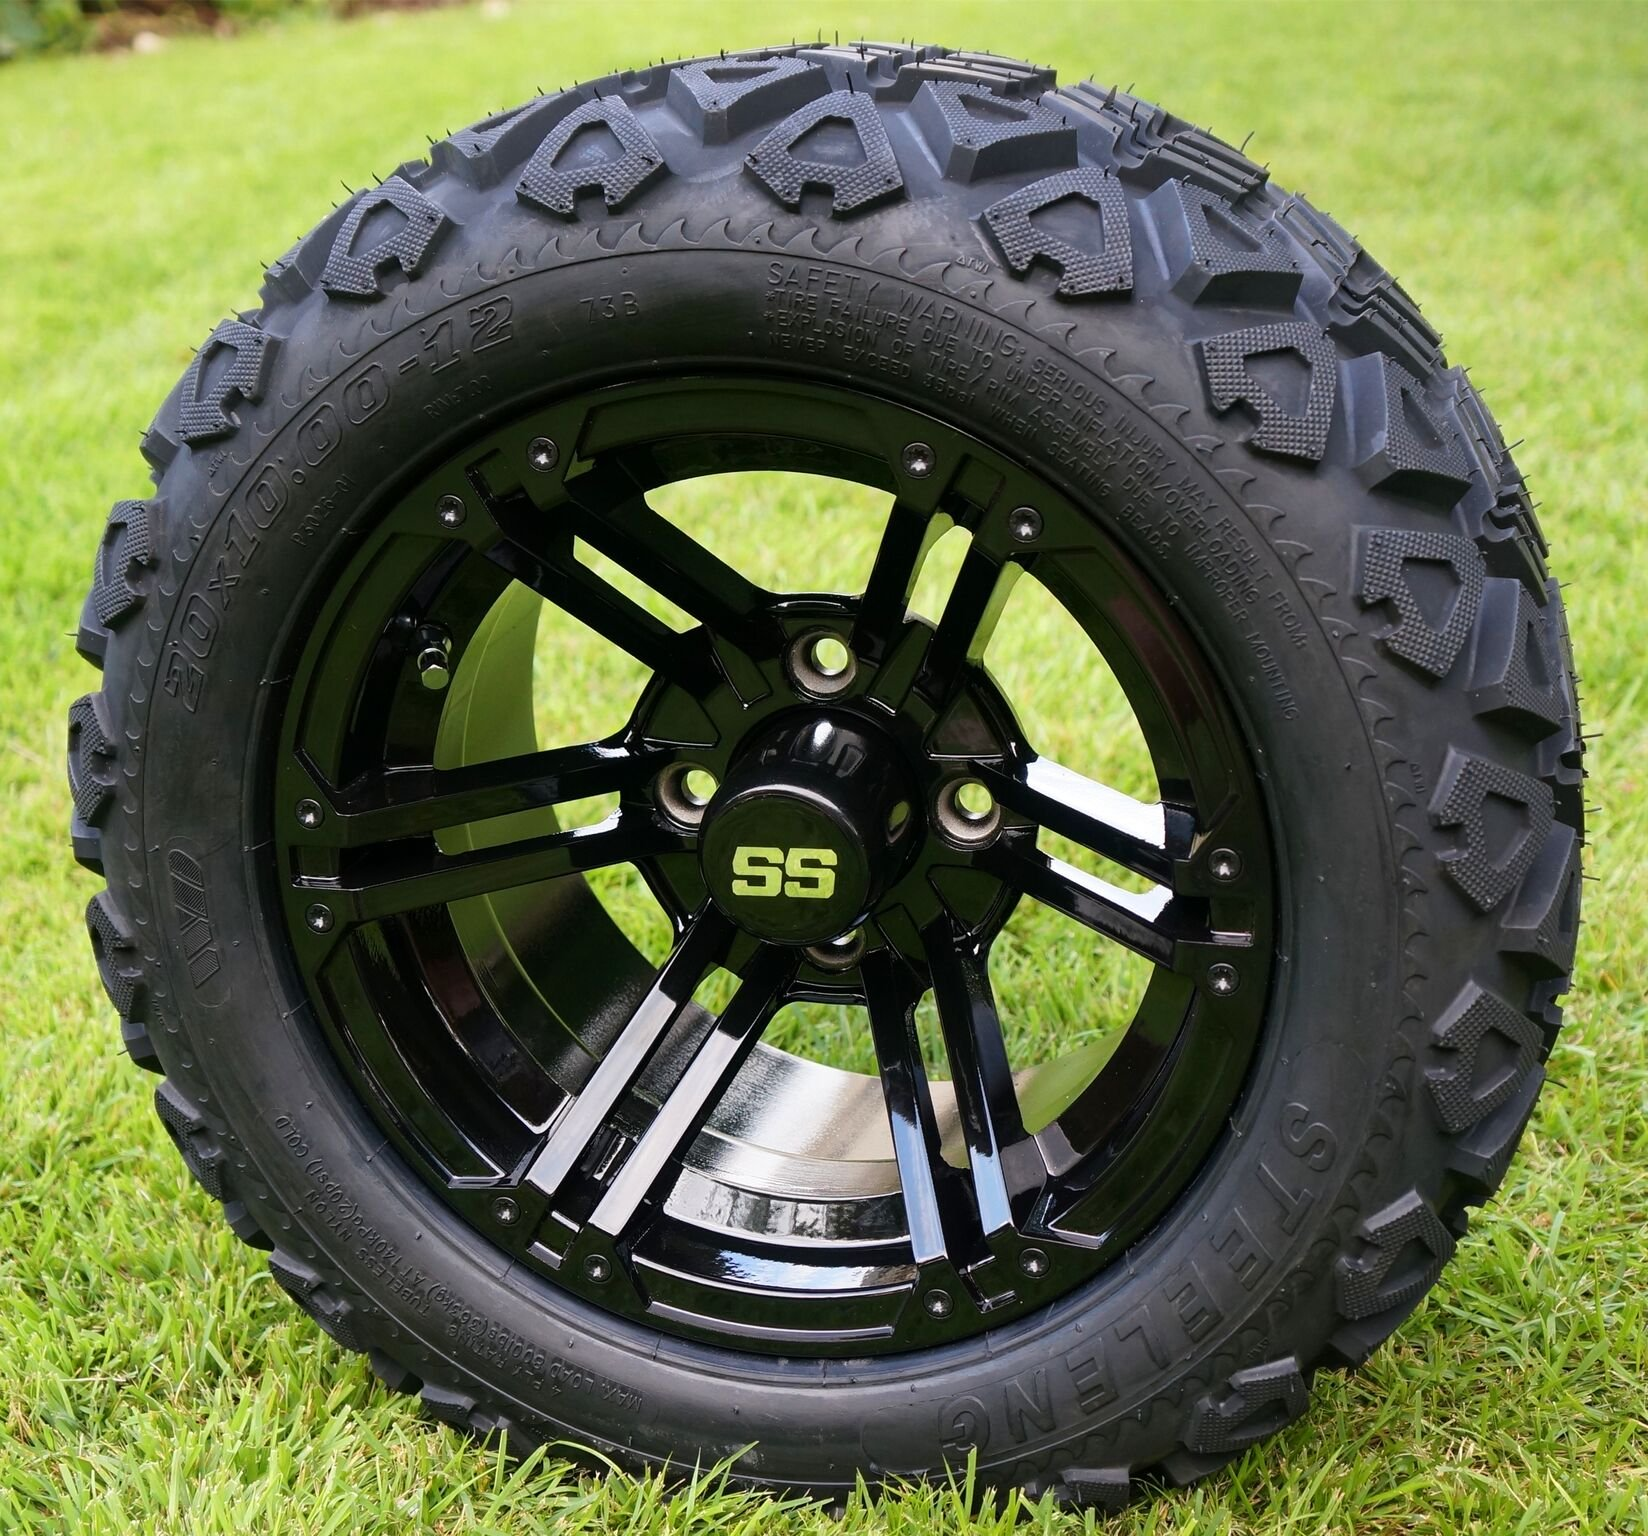 12'' TERMINATOR Gloss Black Golf Cart Wheels and 20x10-12 DOT All Terrain Golf Cart Tires - Set of 4 - NO LIFT REQUIRED (read description)